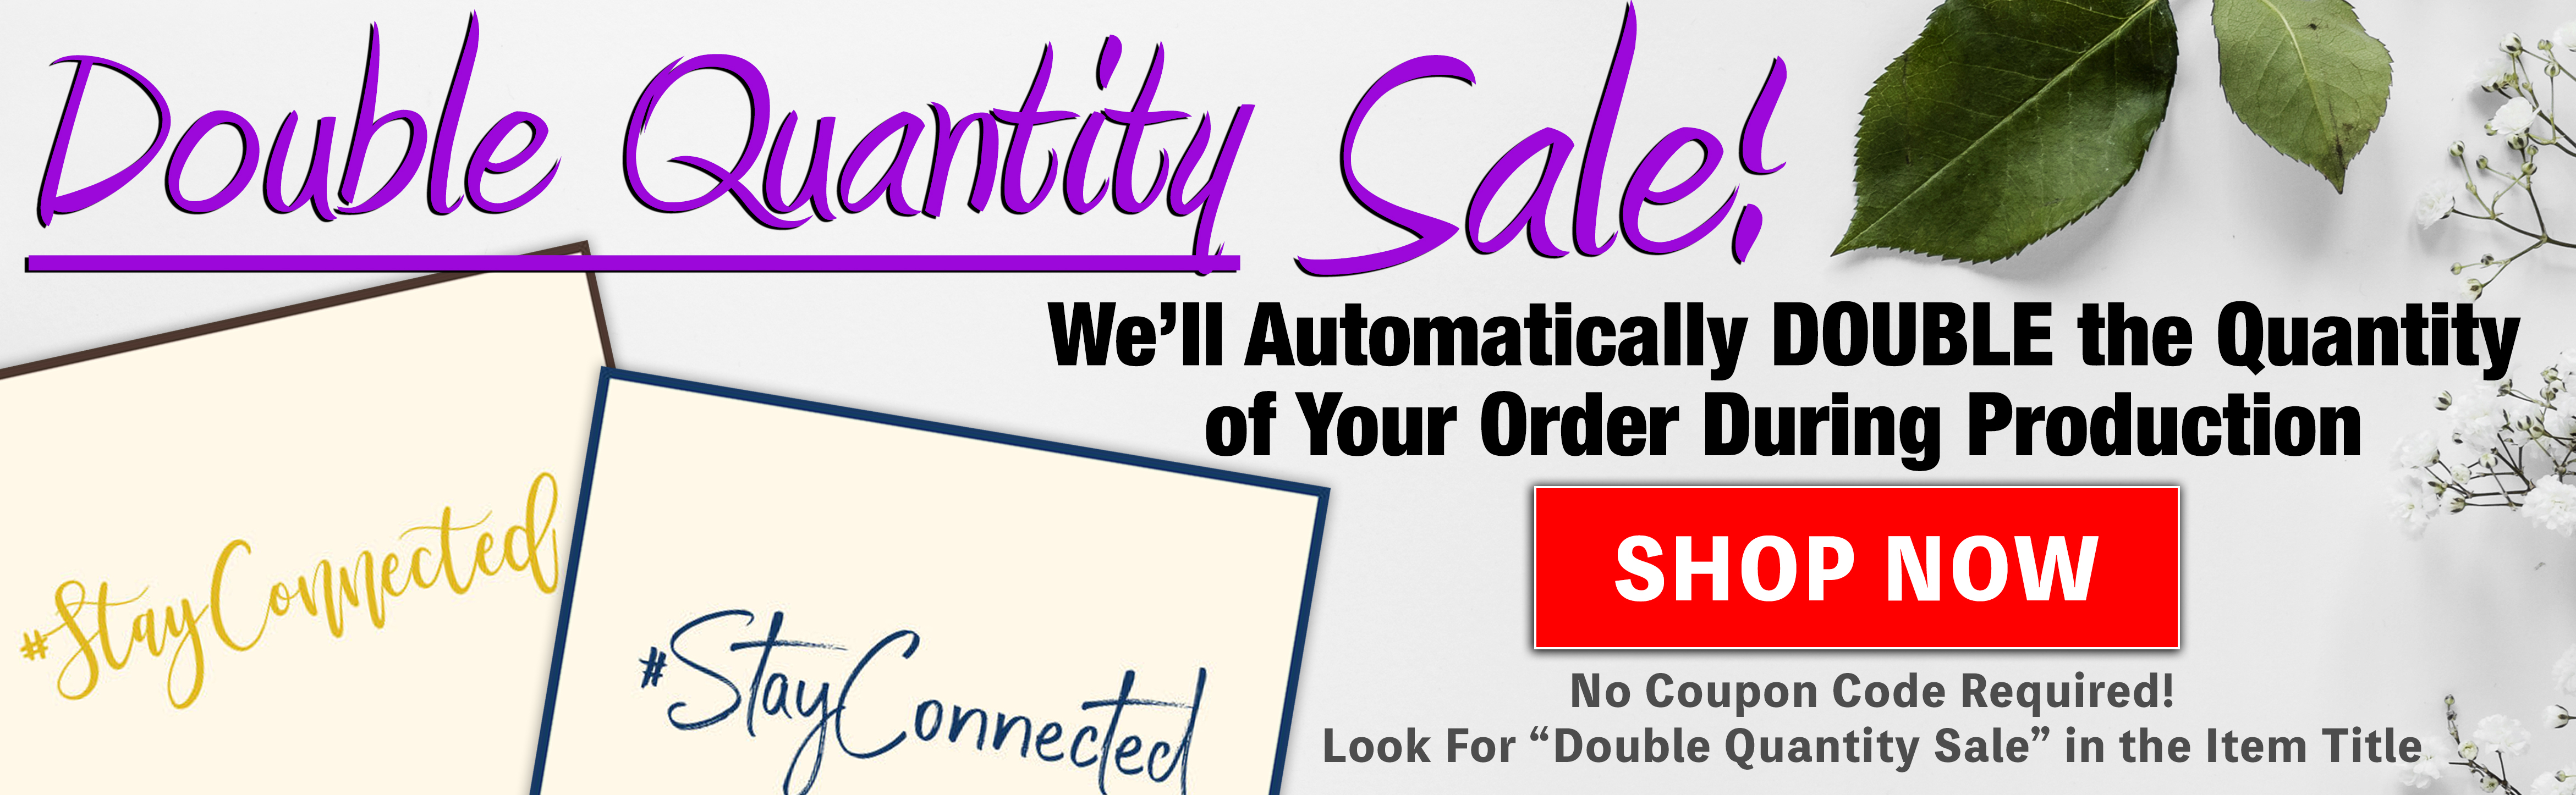 Double Quantity Sale at StationeryXpress.com!